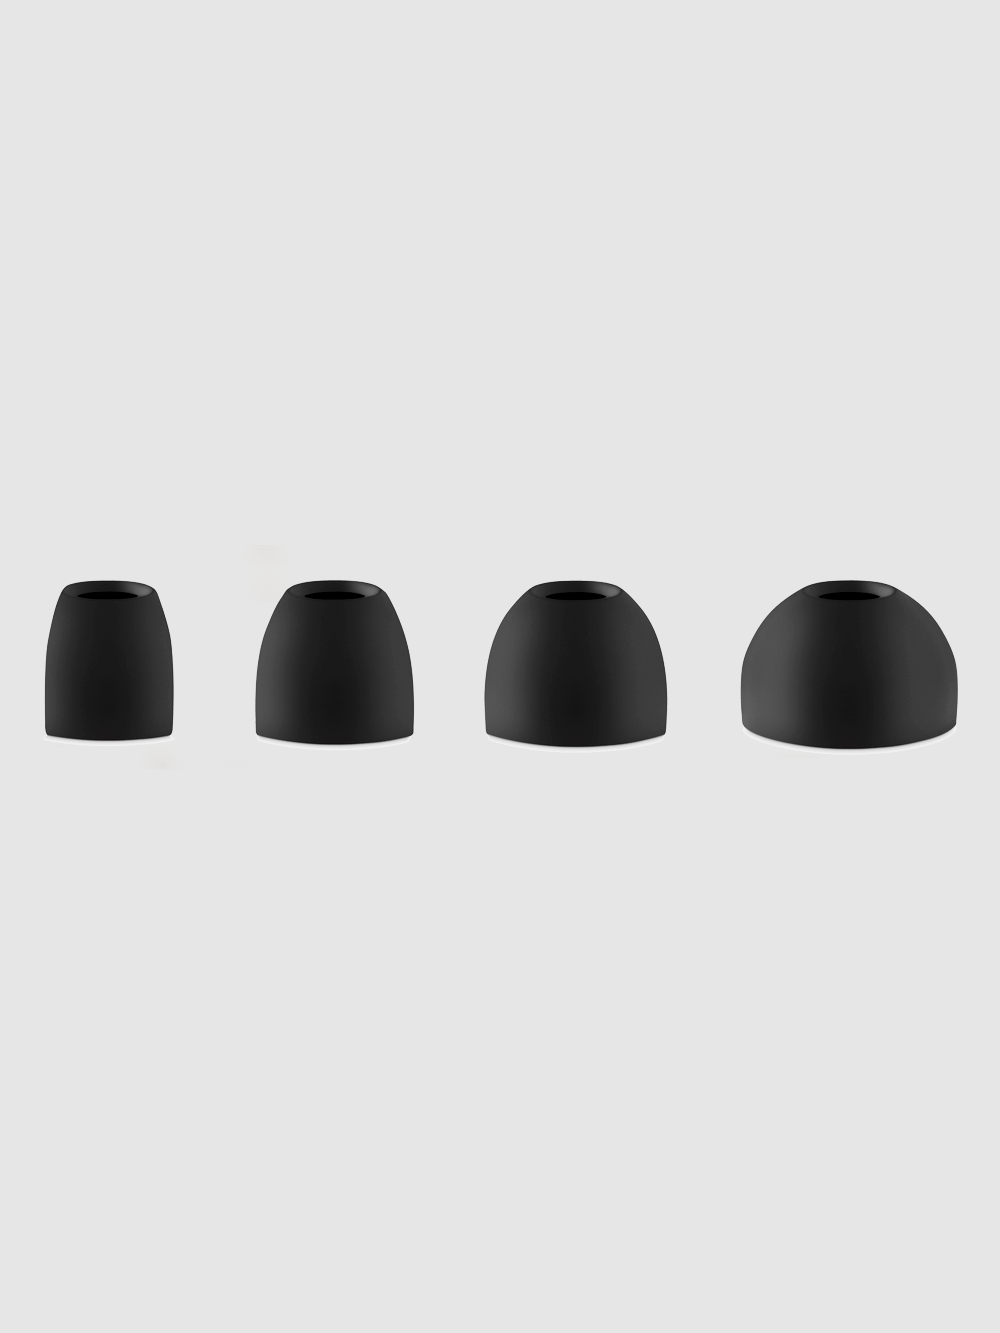 Beoplay E6 Ear Tips - Black